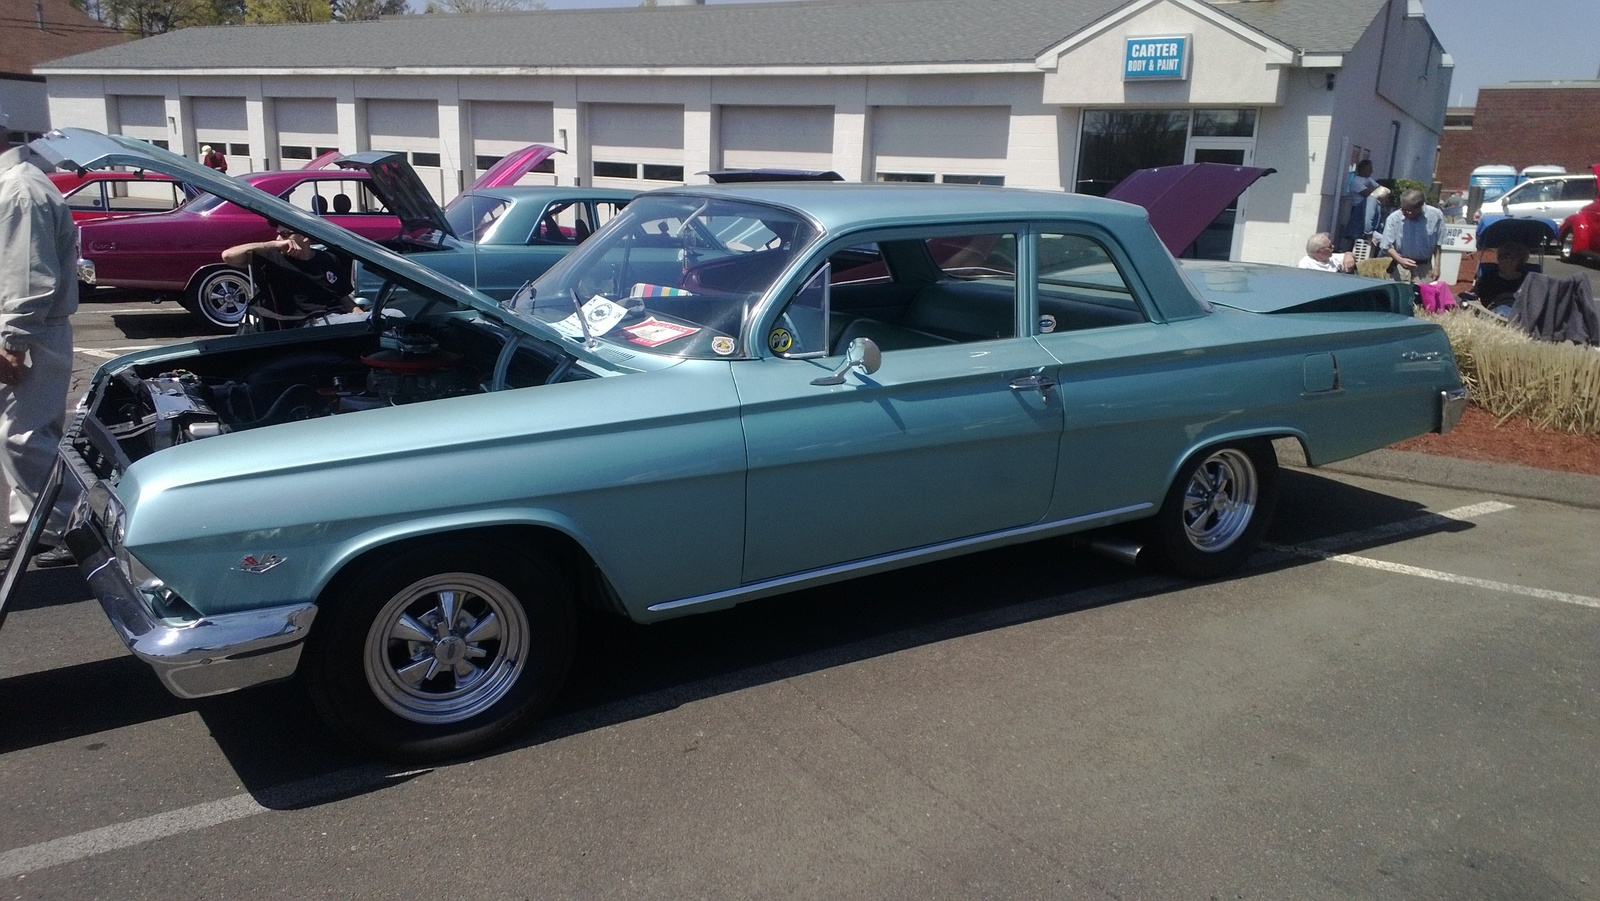 All Chevy 1960 chevrolet biscayne 2 door : Chevrolet Biscayne - Pictures, posters, news and videos on your ...